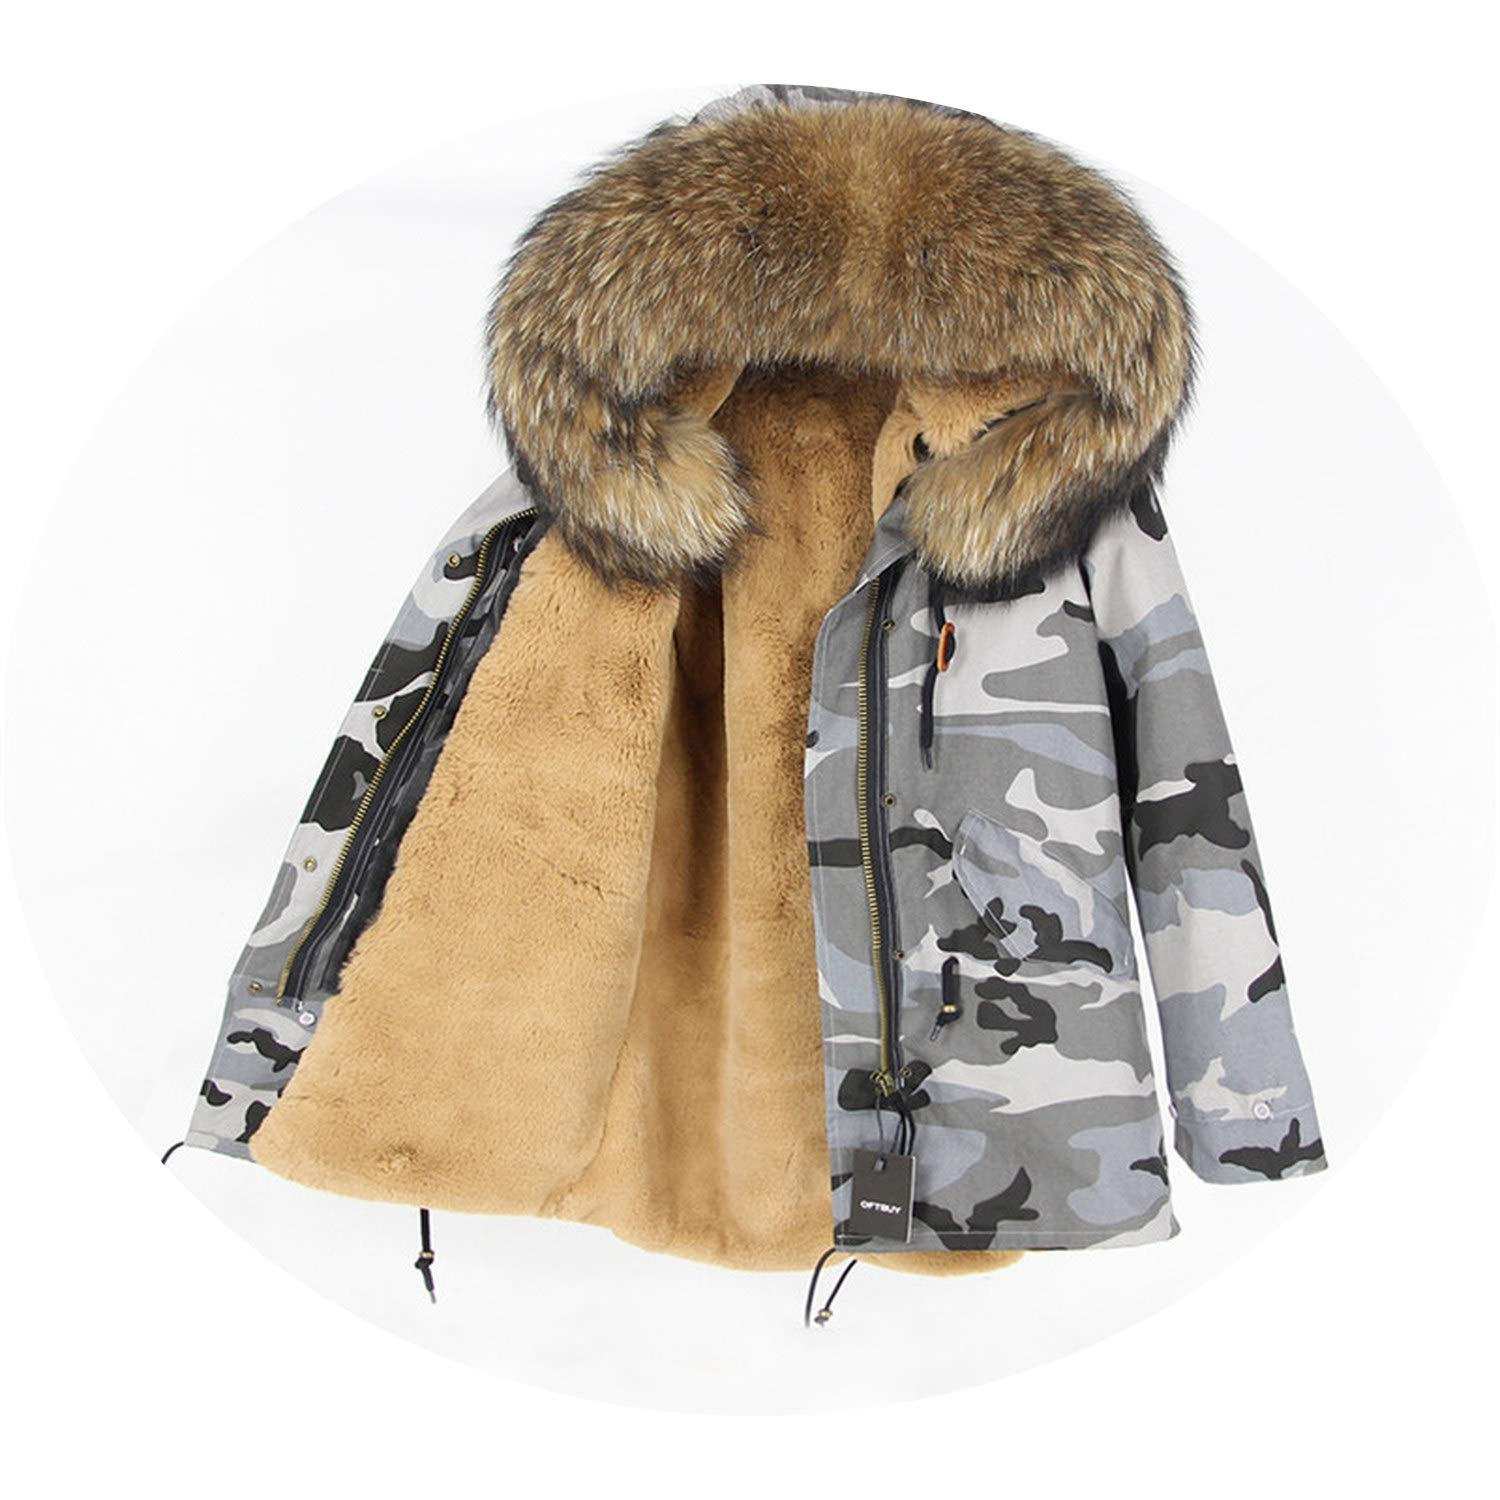 2 EnjoySexy Parka Winter Jacket Coat Women Natural Raccoon Fur Collar Hooded Warm Soft Faux Fur Liner